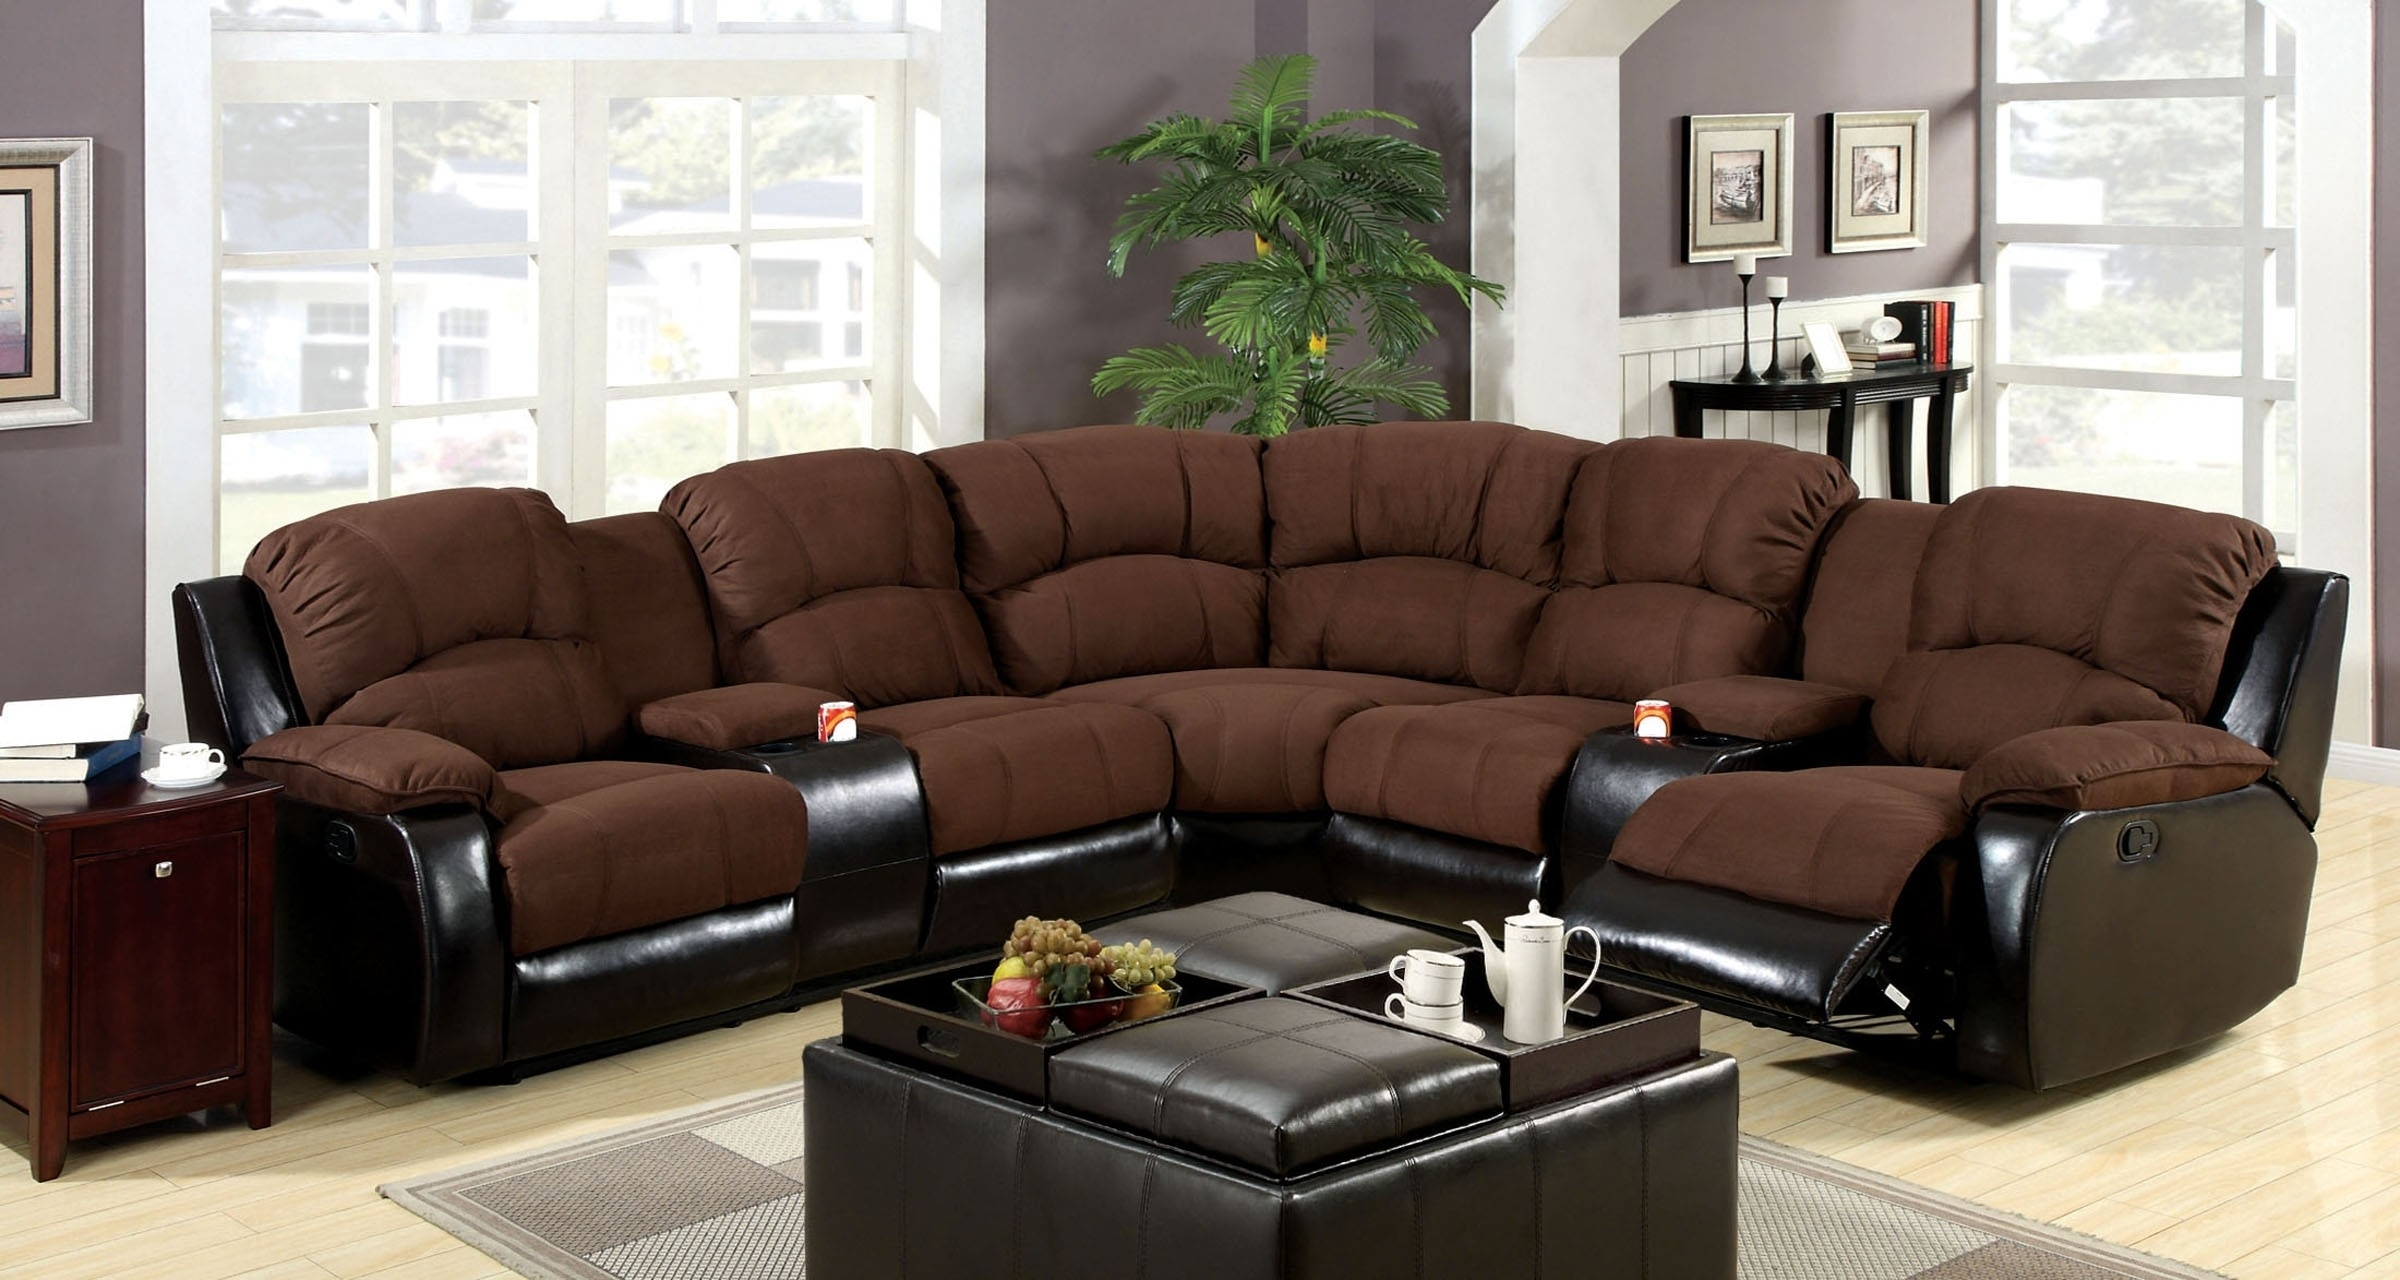 Sectional Sofas With Recliners And Cup Holders | Jannamo Within Sectional Sofas With Cup Holders (Image 8 of 10)